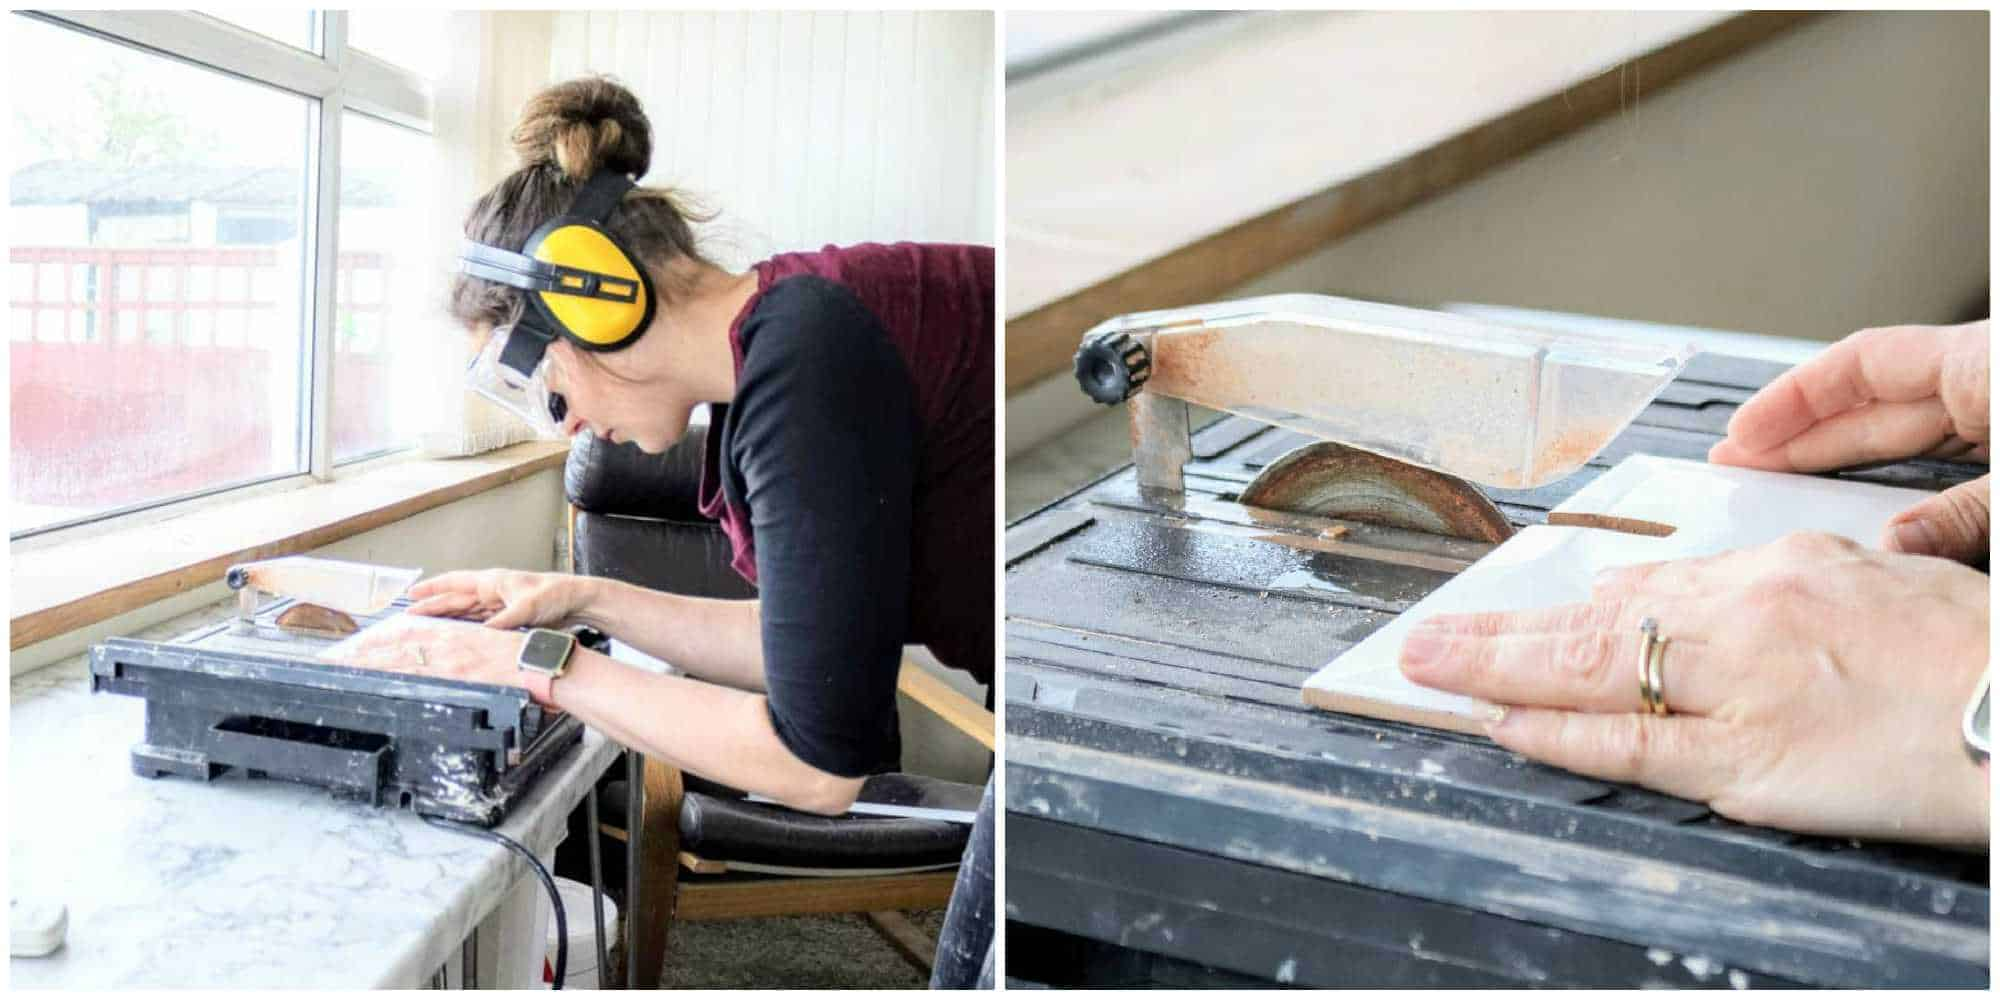 woman using a wet tile cutter with diamond blade.